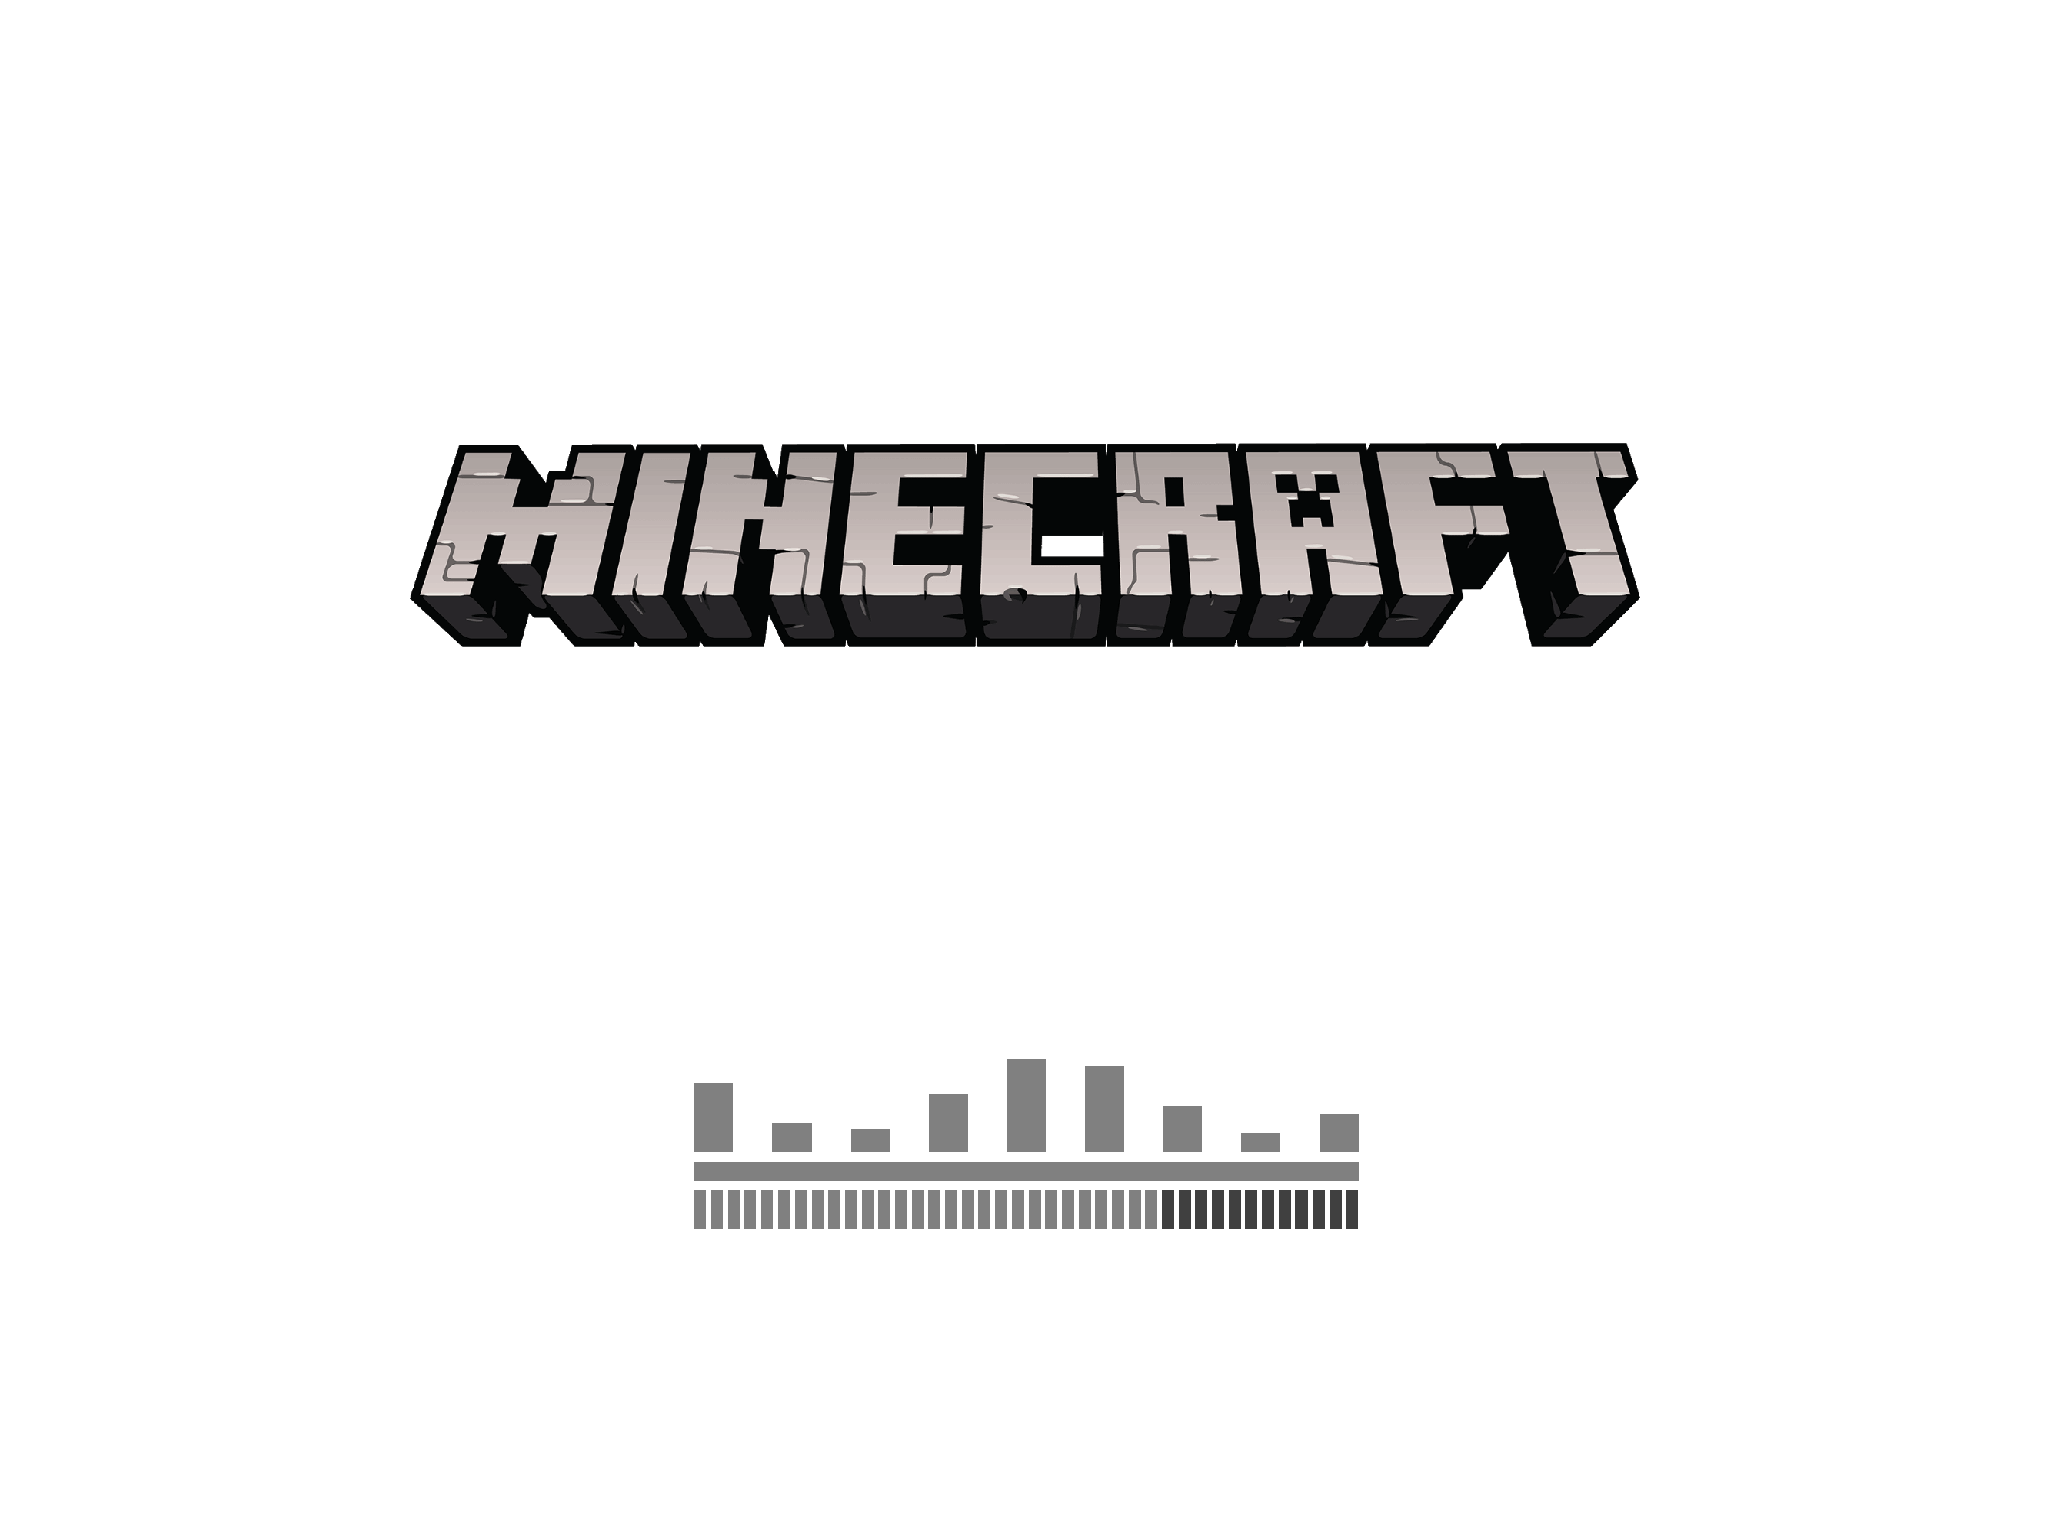 MCPE-28310] Game stuck on white screen that says minecraft